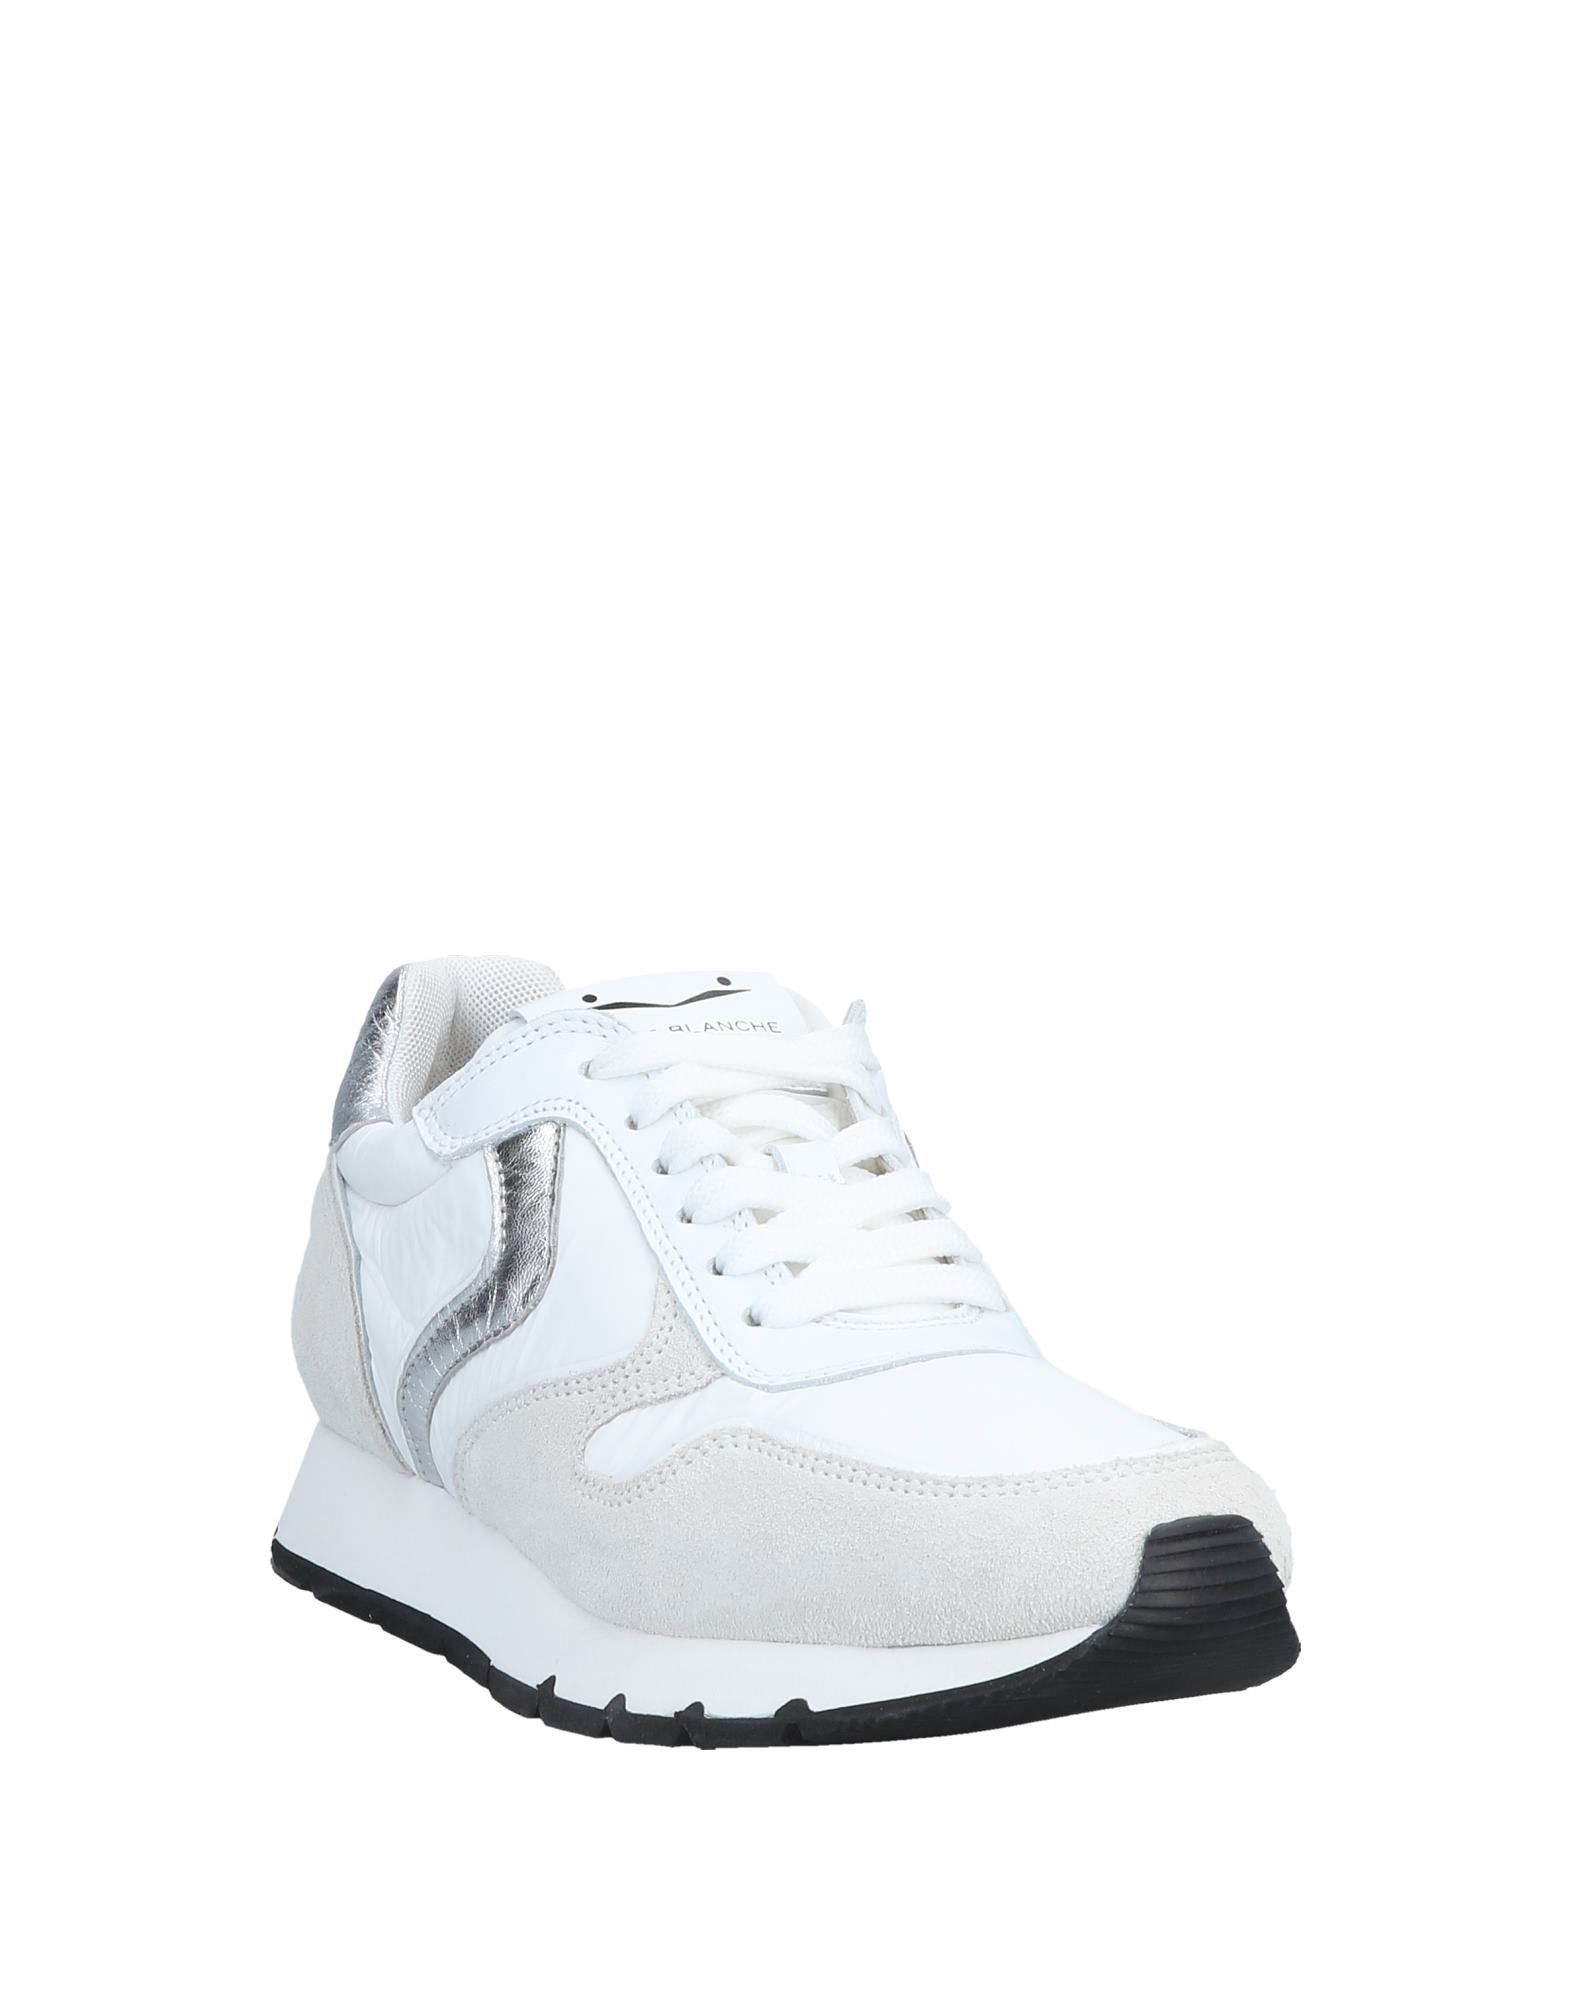 Voile Blanche Sneakers - Women Voile Blanche Sneakers Sneakers Sneakers online on  United Kingdom - 11565299WQ 0665cf